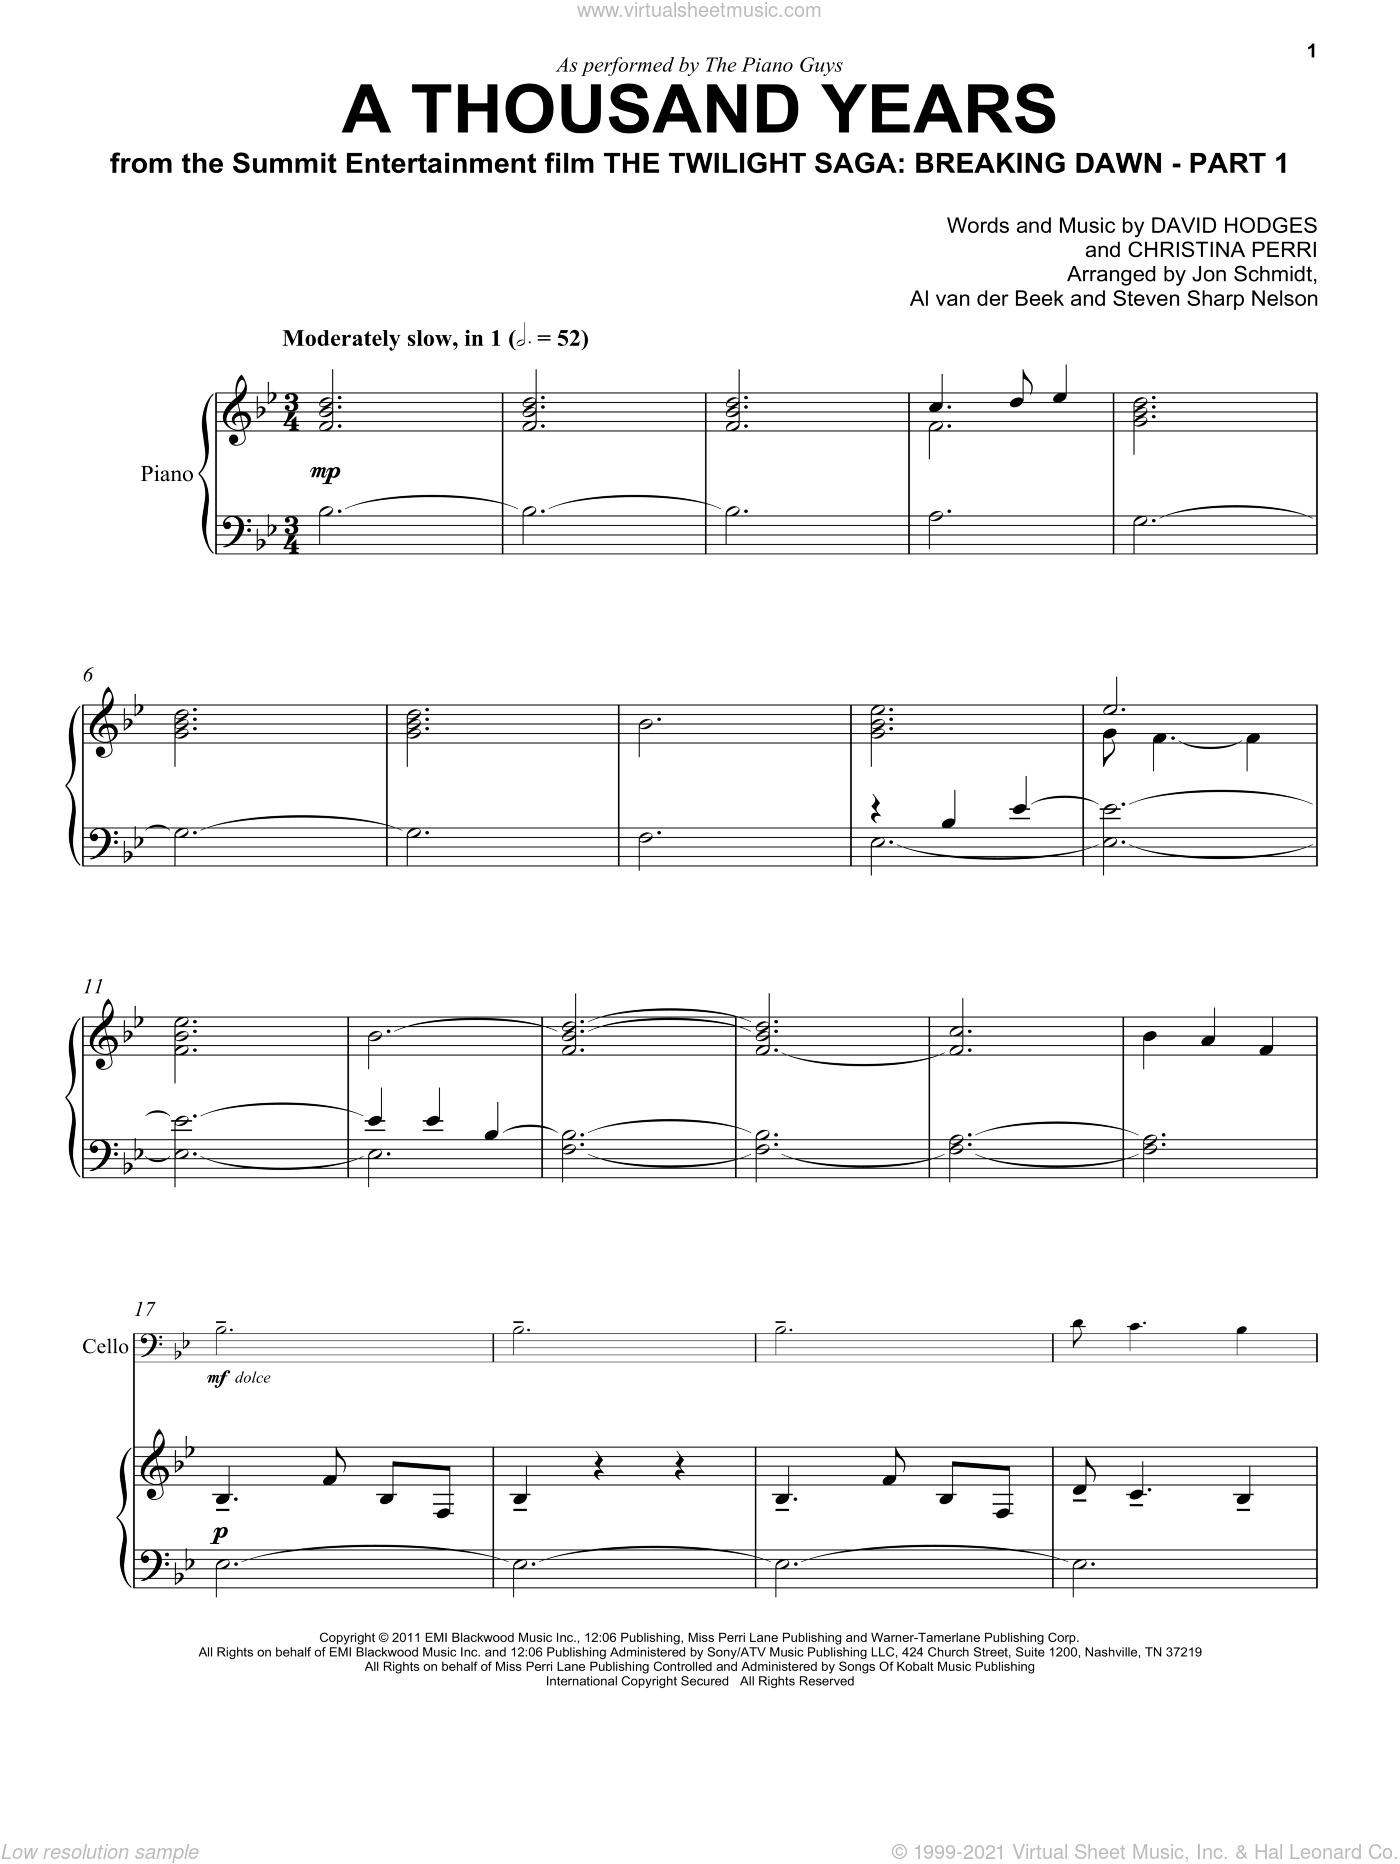 A Thousand Years sheet music for piano solo by David Hodges